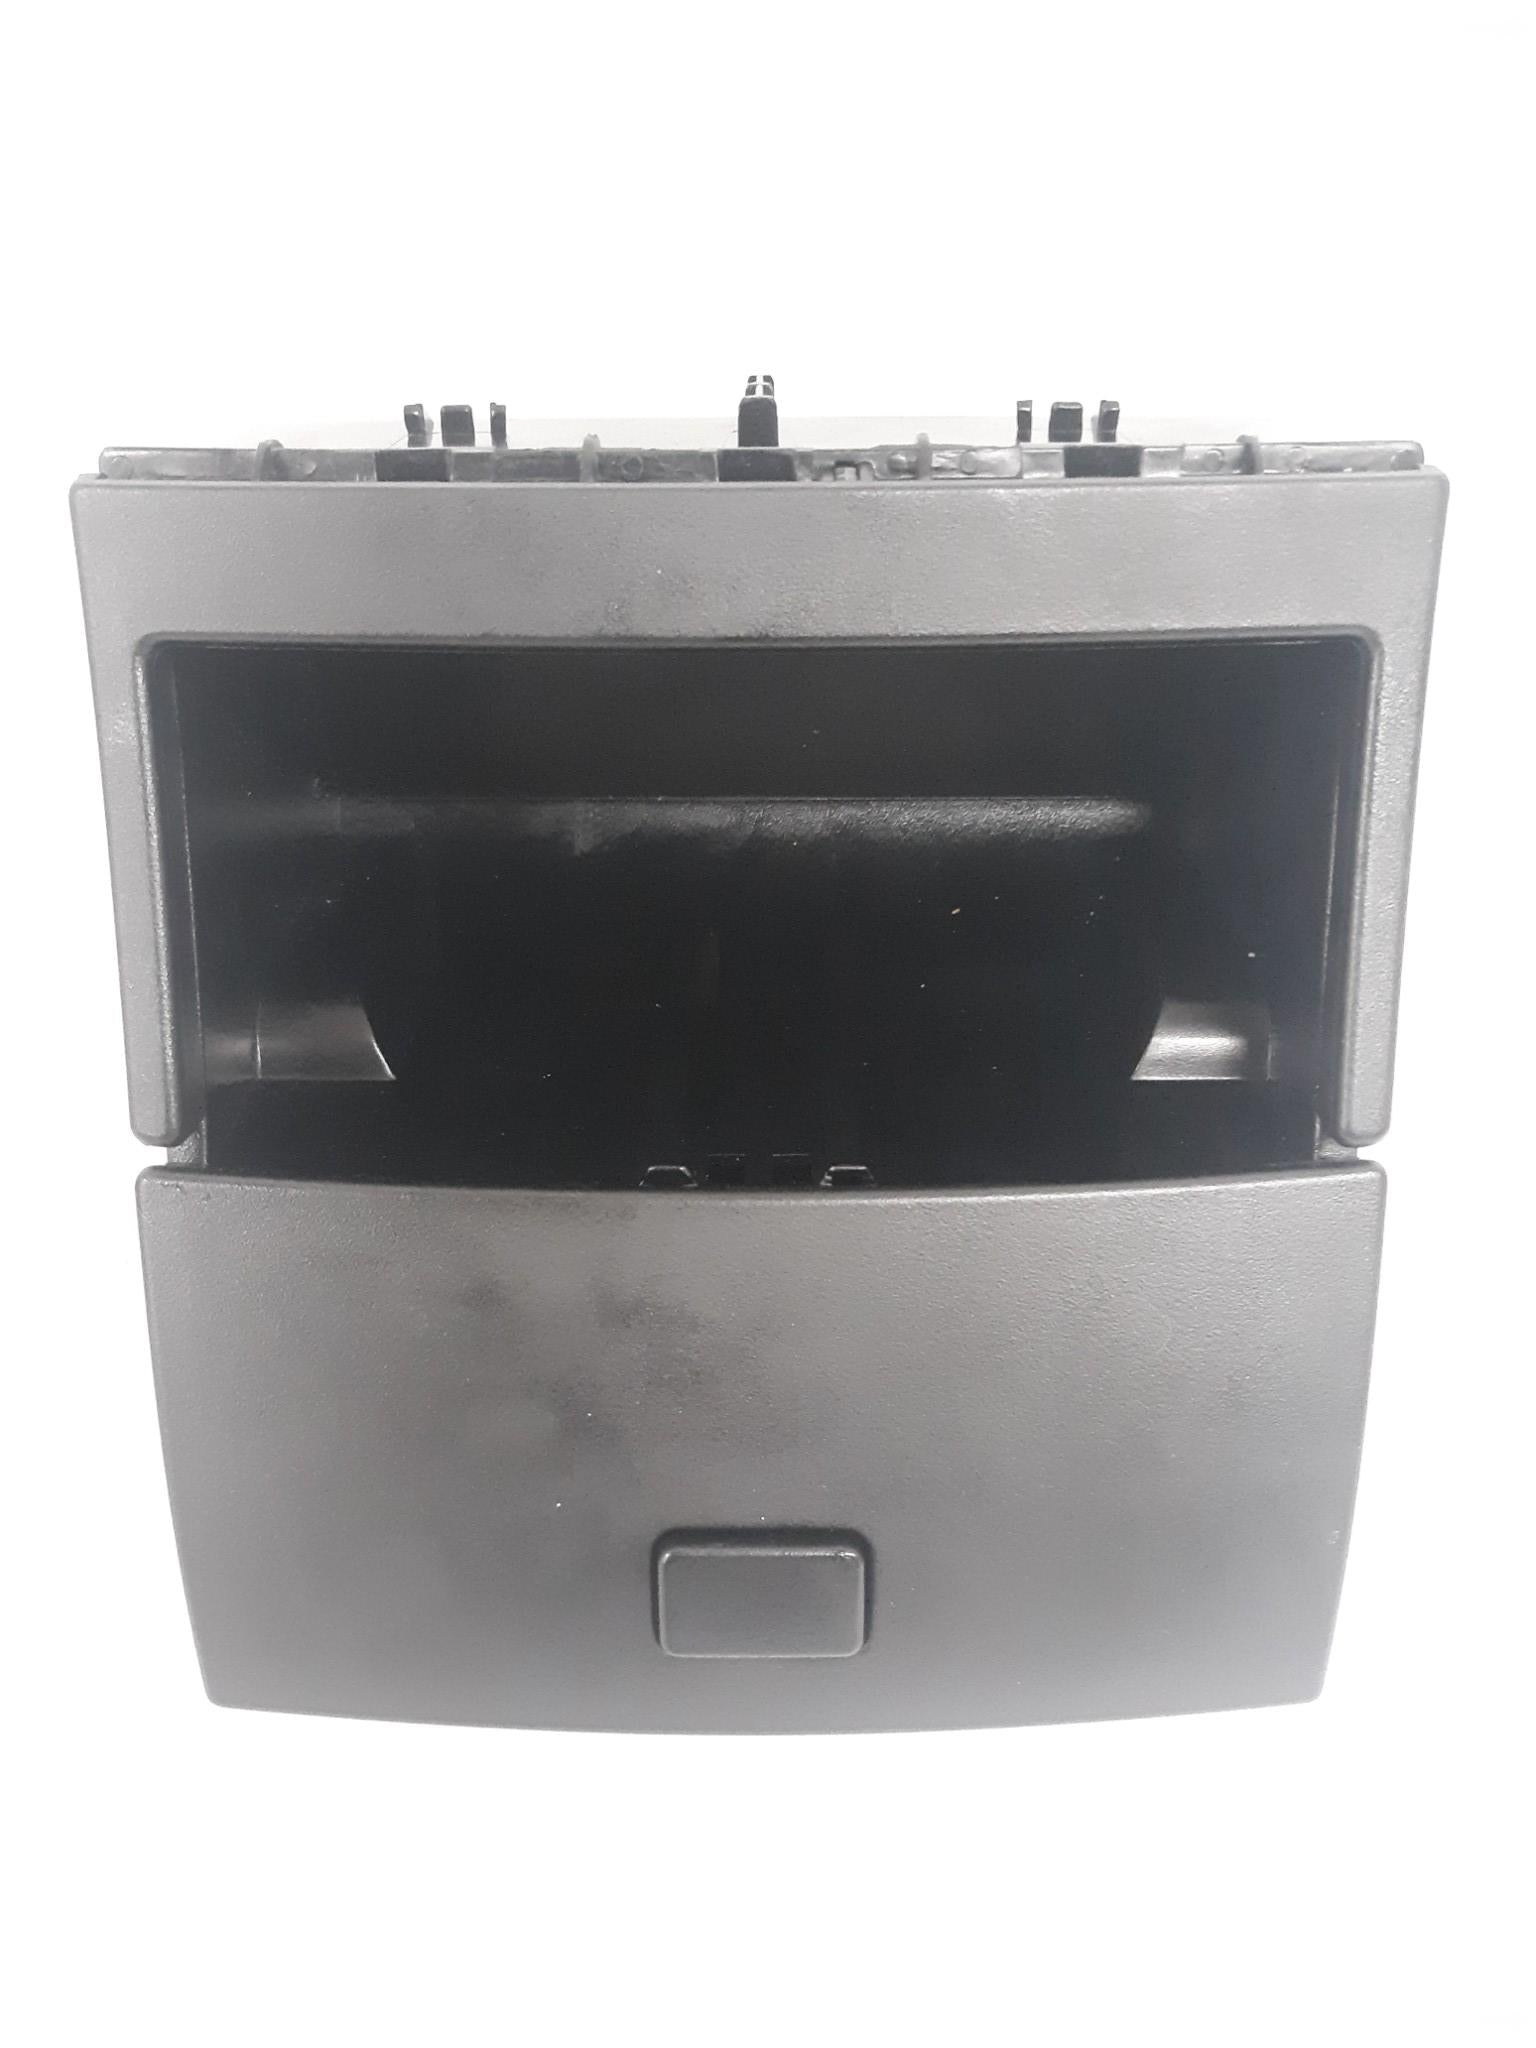 06-12 Mercedes W164 ML320 GL450 Rear Center Console Ash Tray Storage Compartment - Click Receive Auto Parts